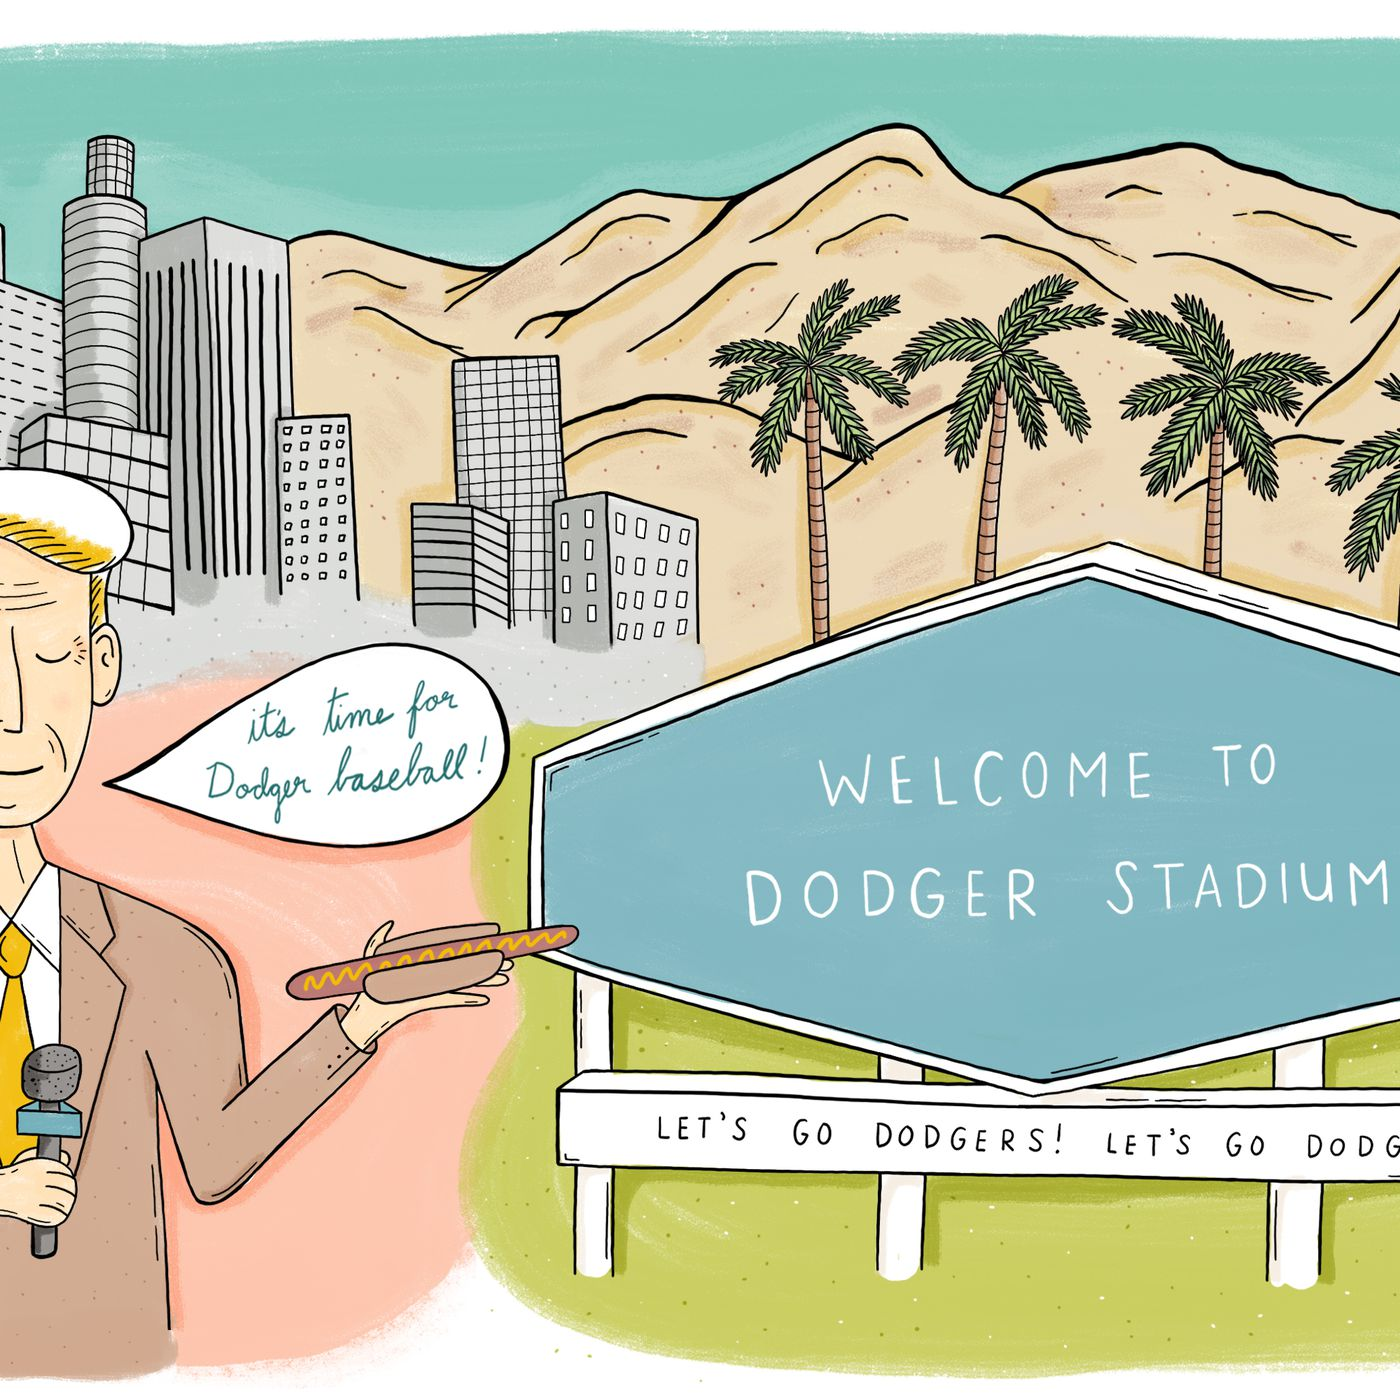 Dodger Stadium: Tips for seating, food, parking - Curbed LA